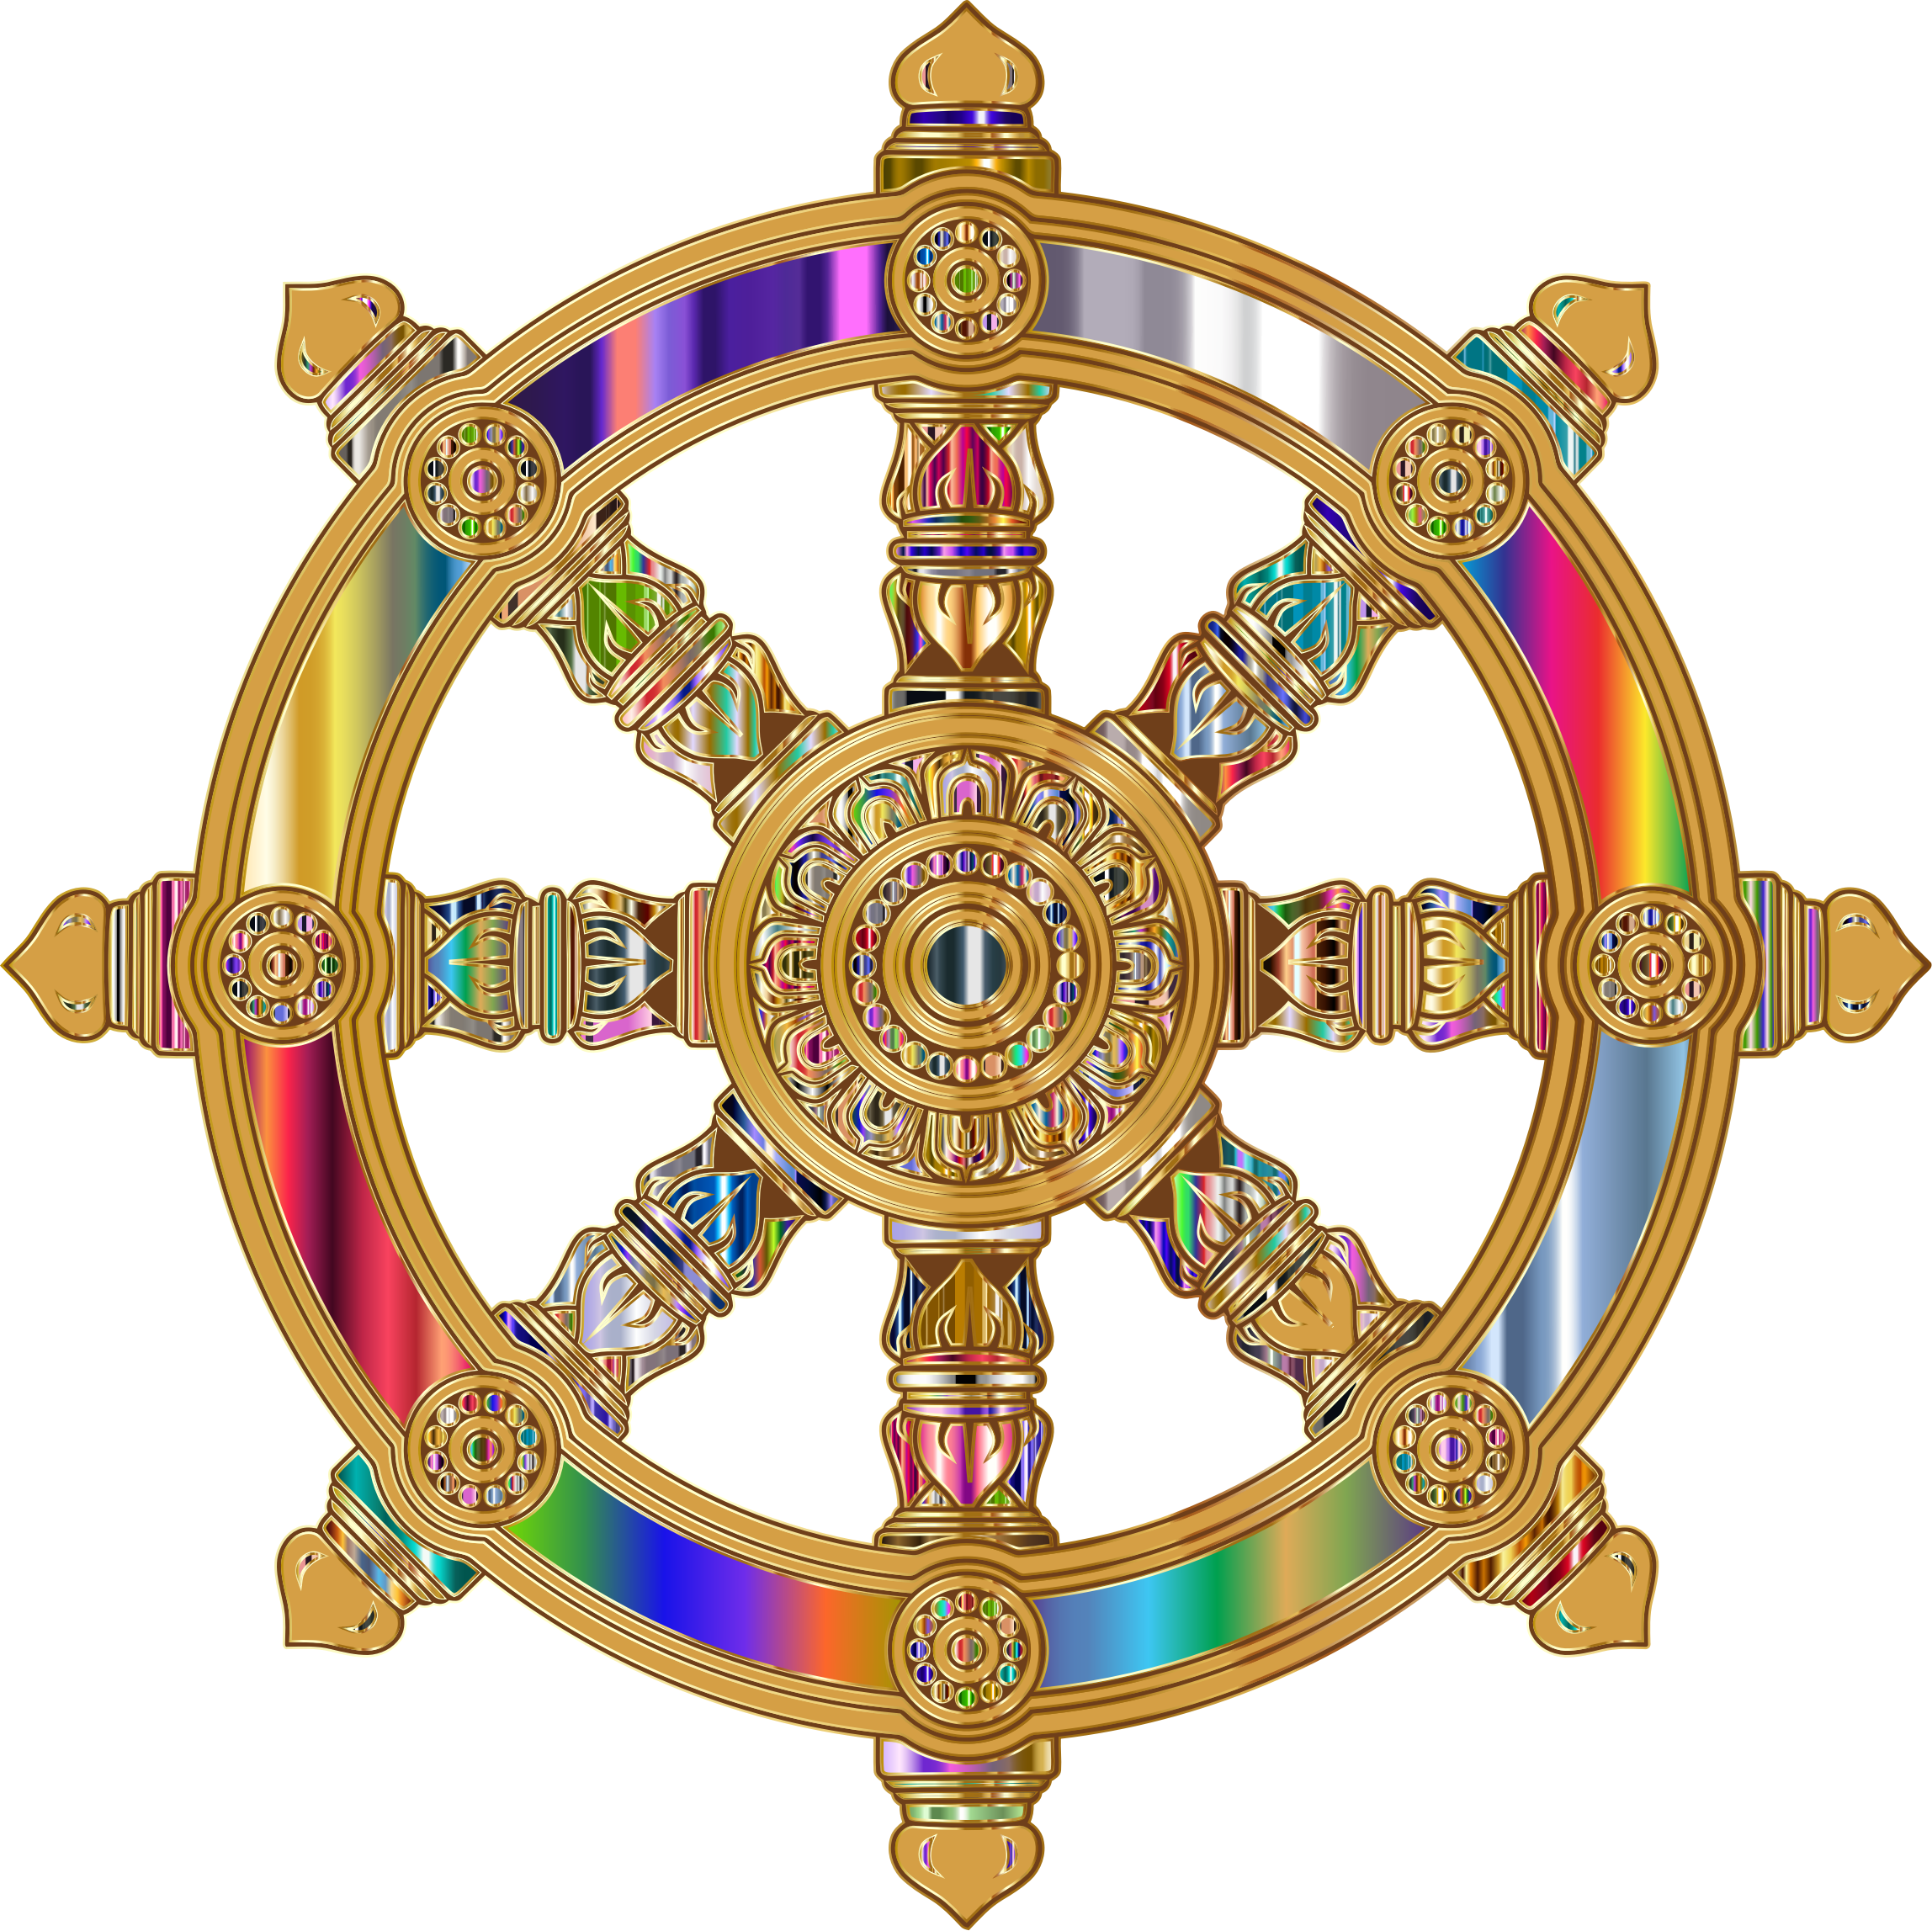 Prismatic Ornate Dharma Wheel 7 Variation 3 by GDJ